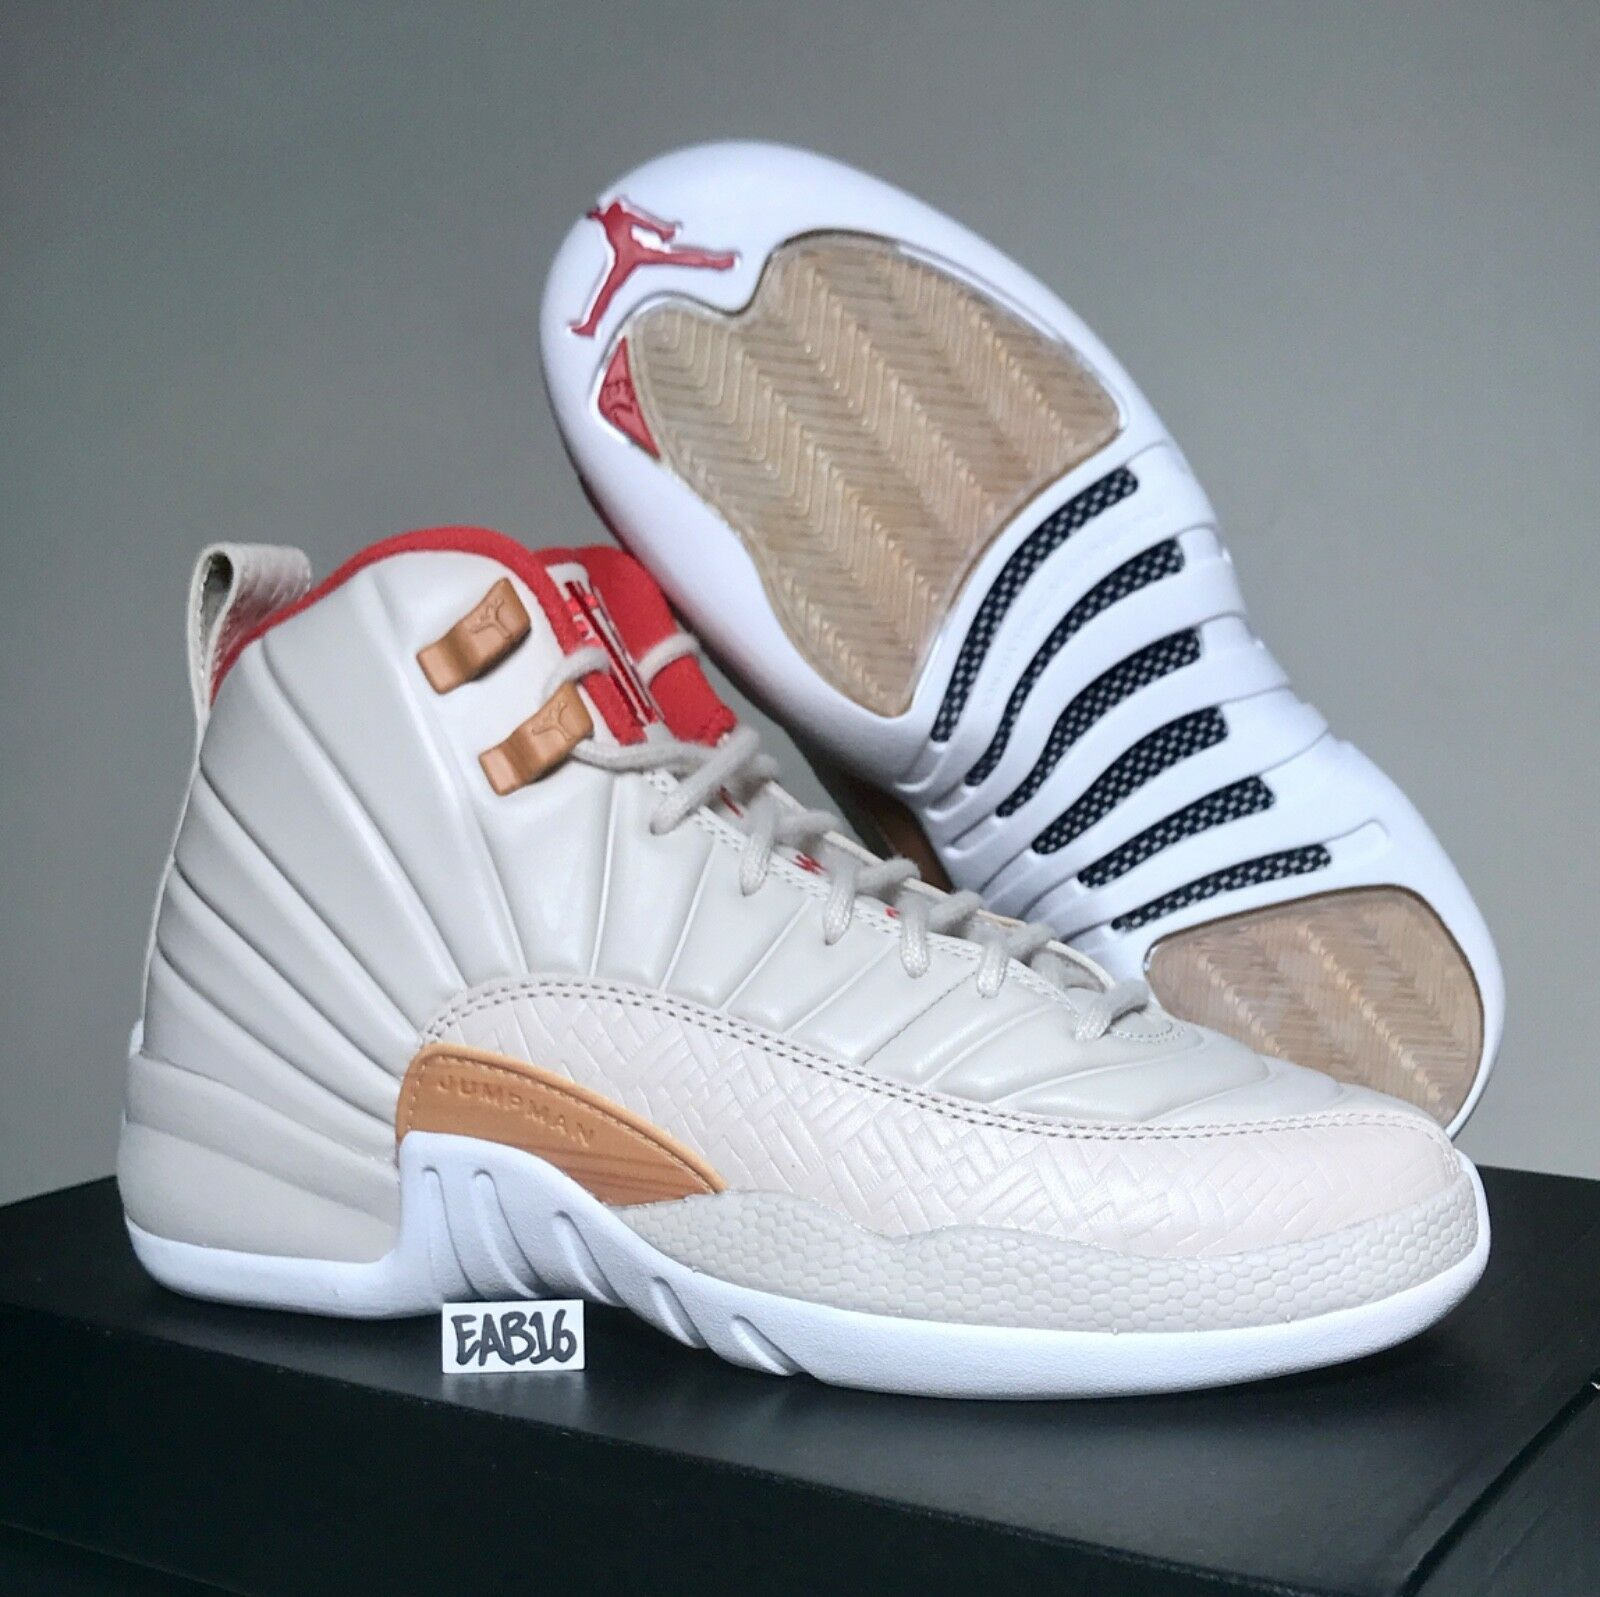 Nike Air Jordan Retro XII 12 CNY GG Chinese New Year 881428 142 GS Size 4 4.5 Y